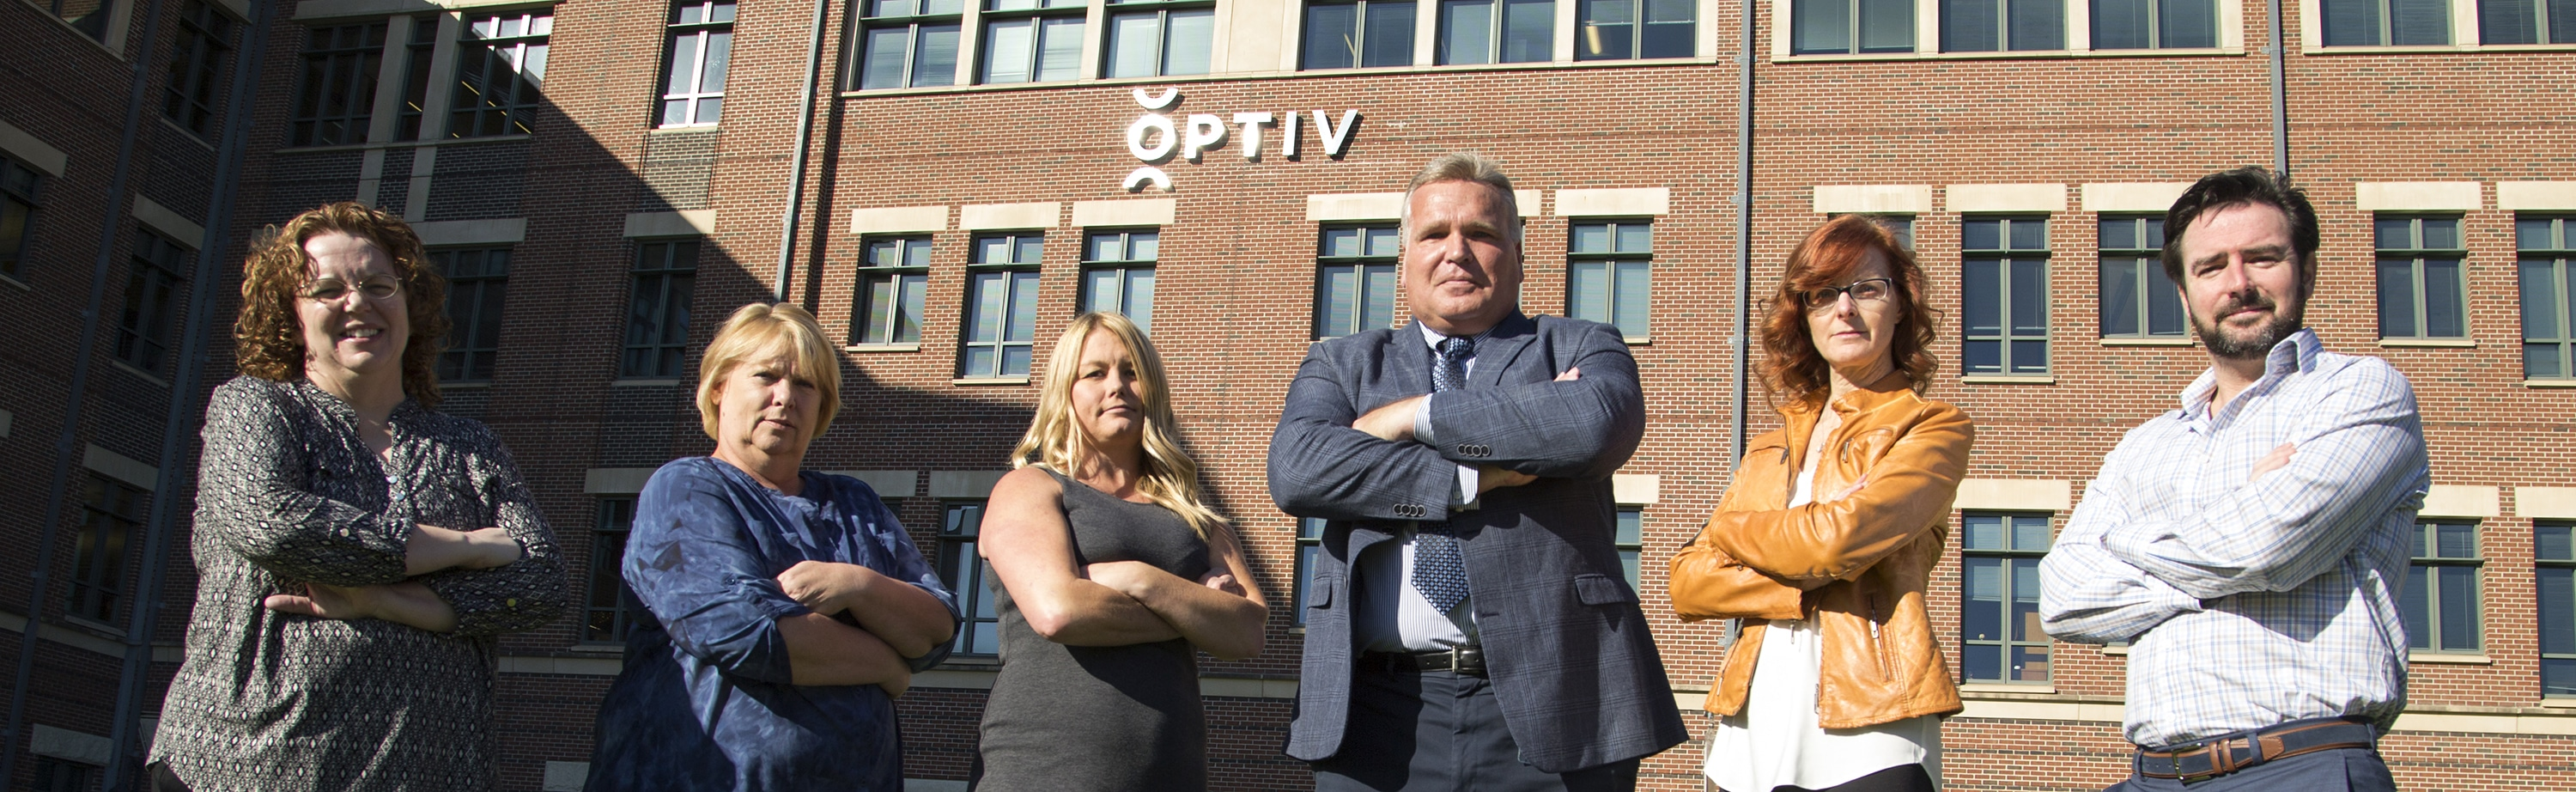 Optiv Security Vanguard